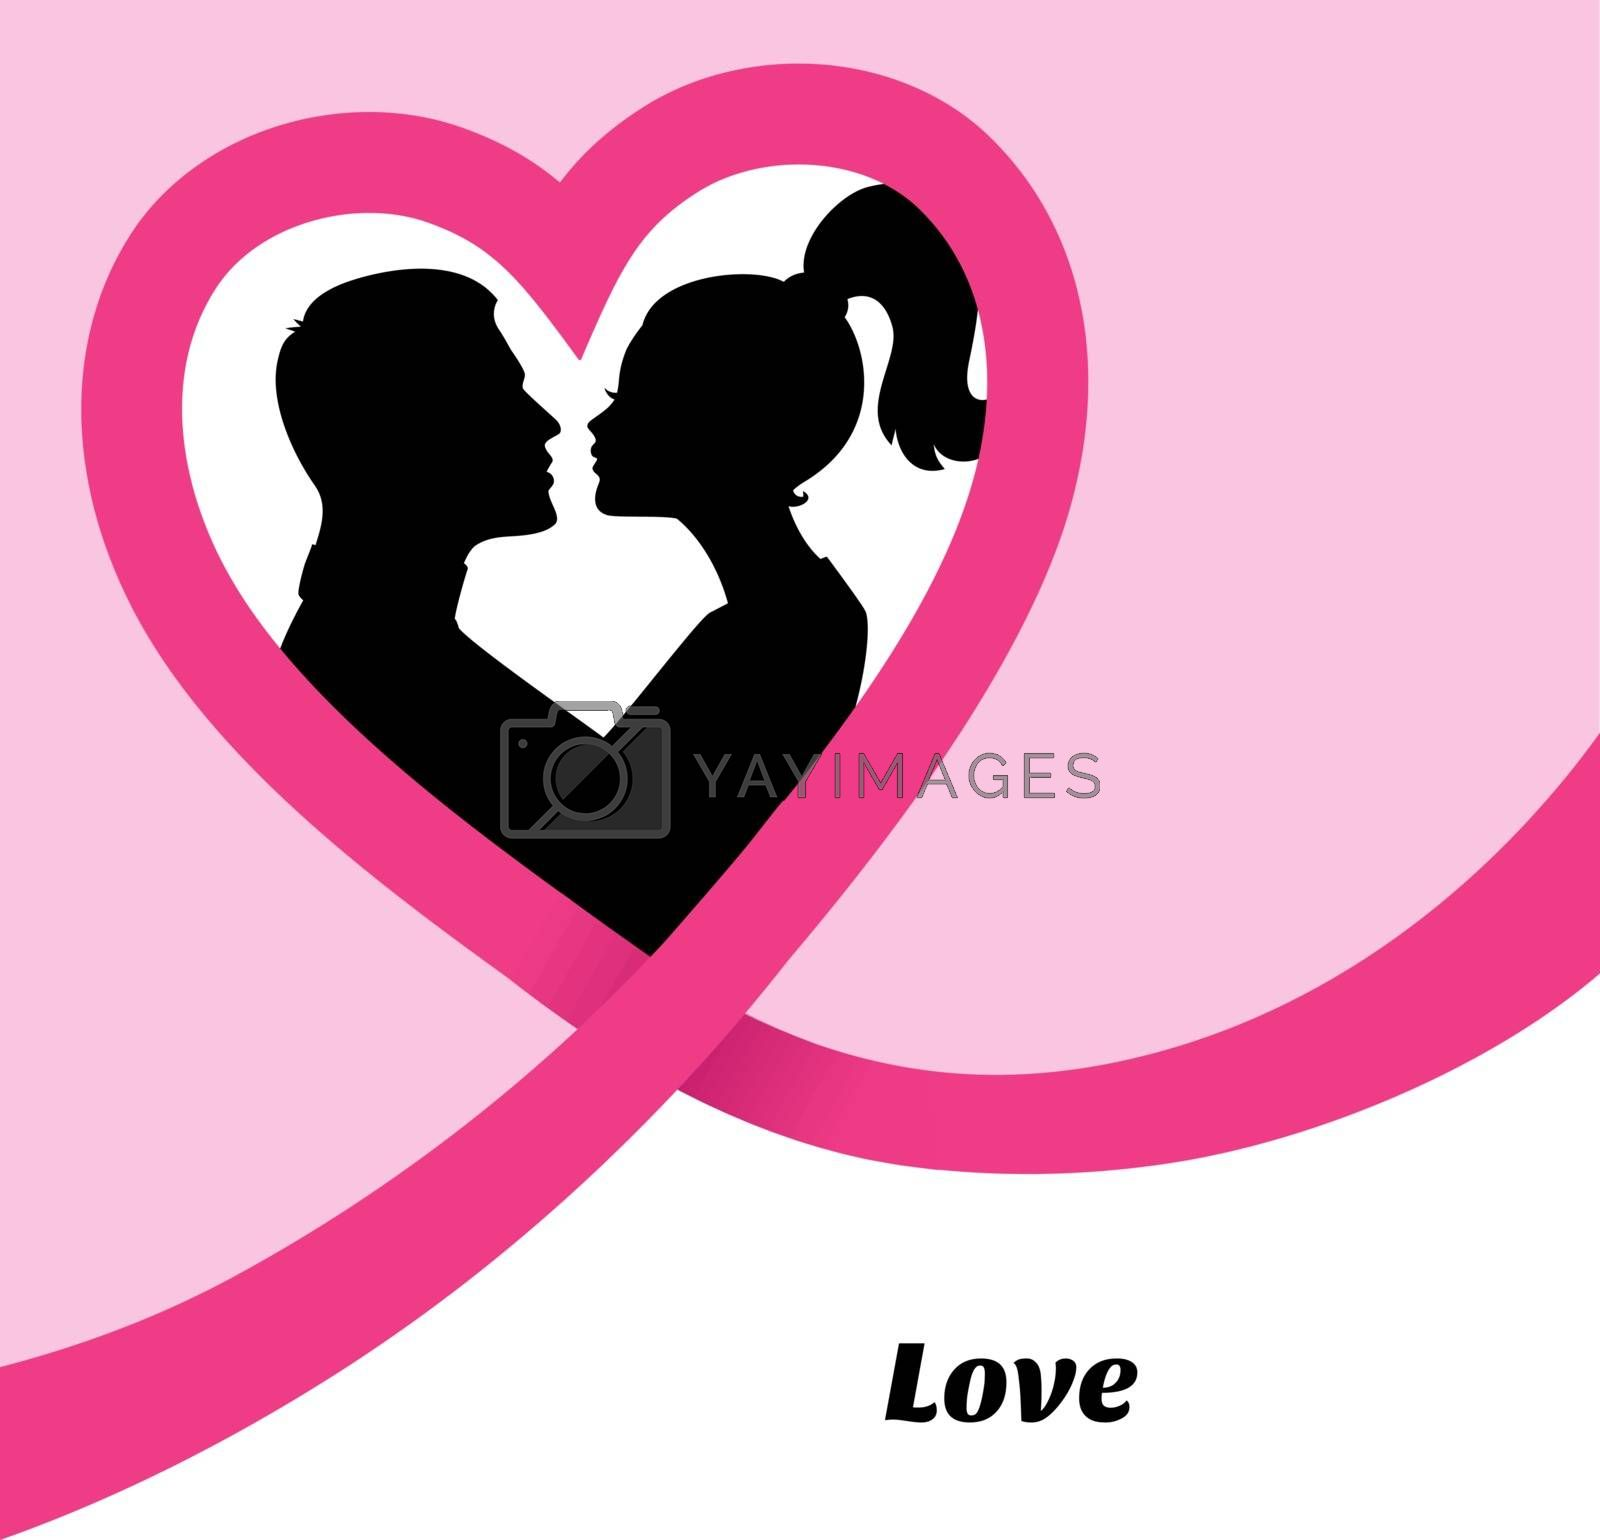 Vector illustration of Couple's silhouette kissing image